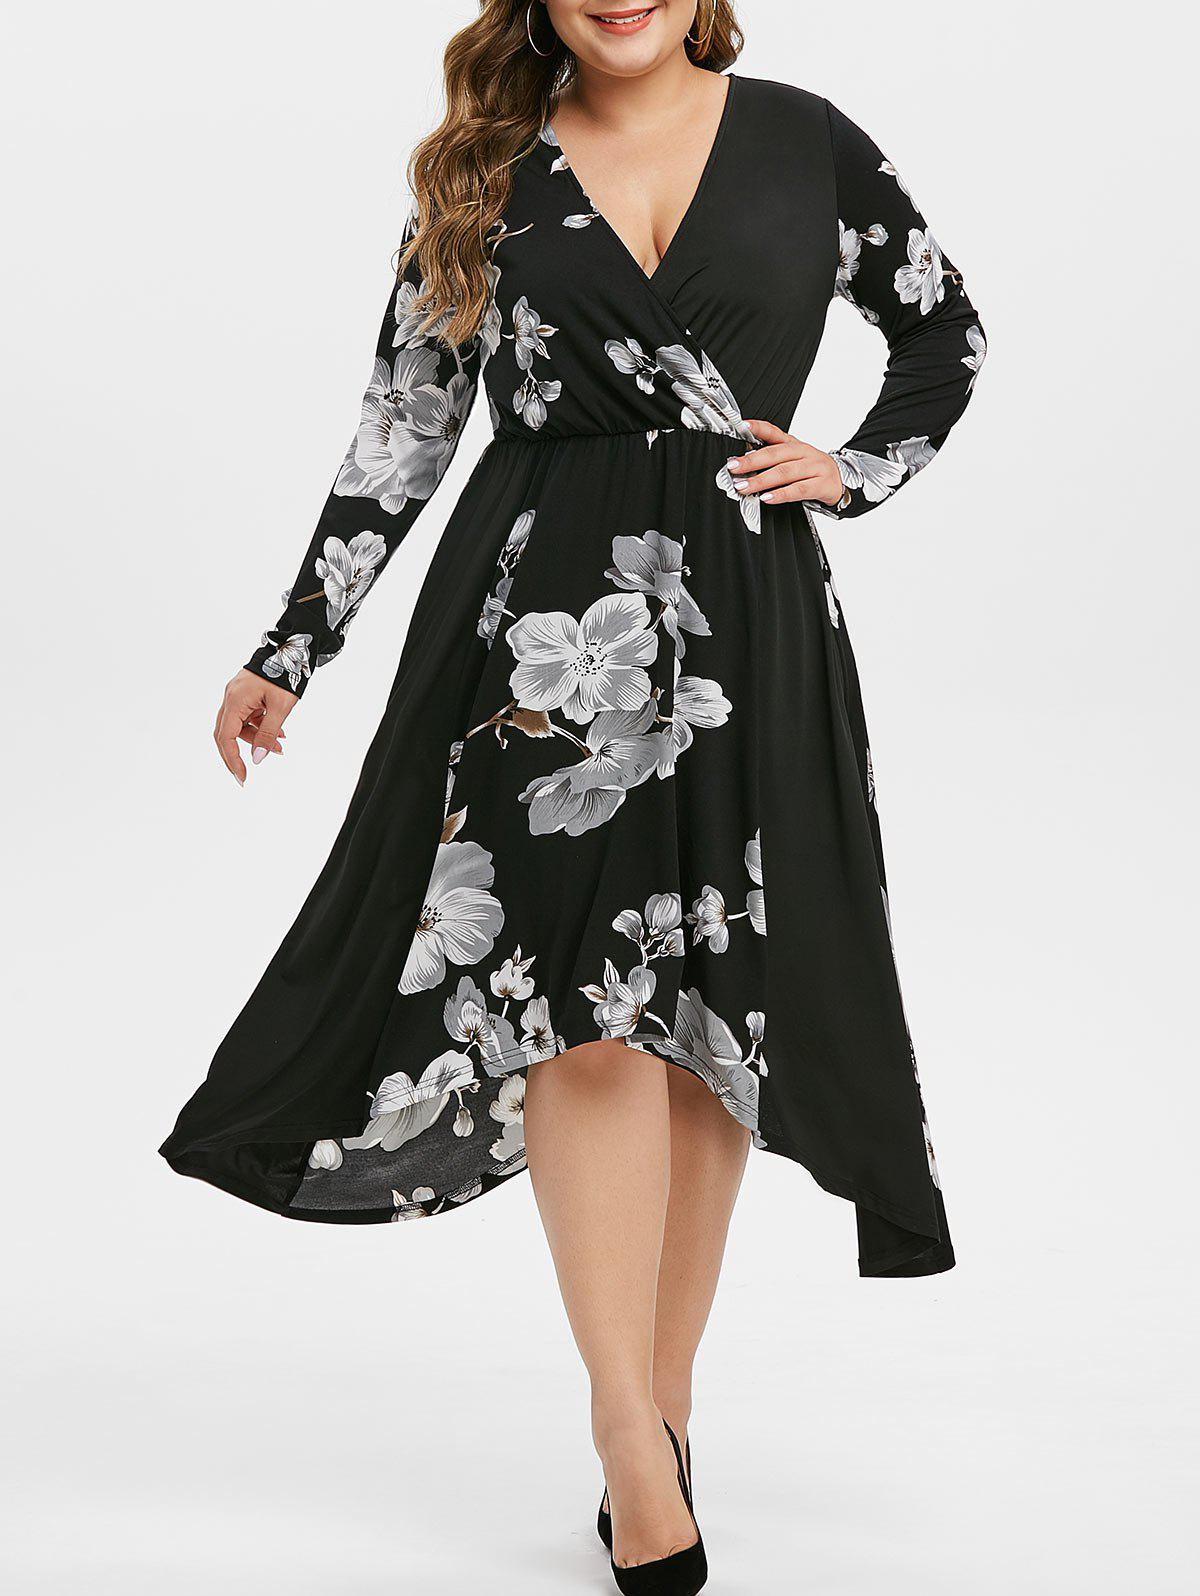 Plus Size Flower Asymmetrical Surplice Dress Rosegal